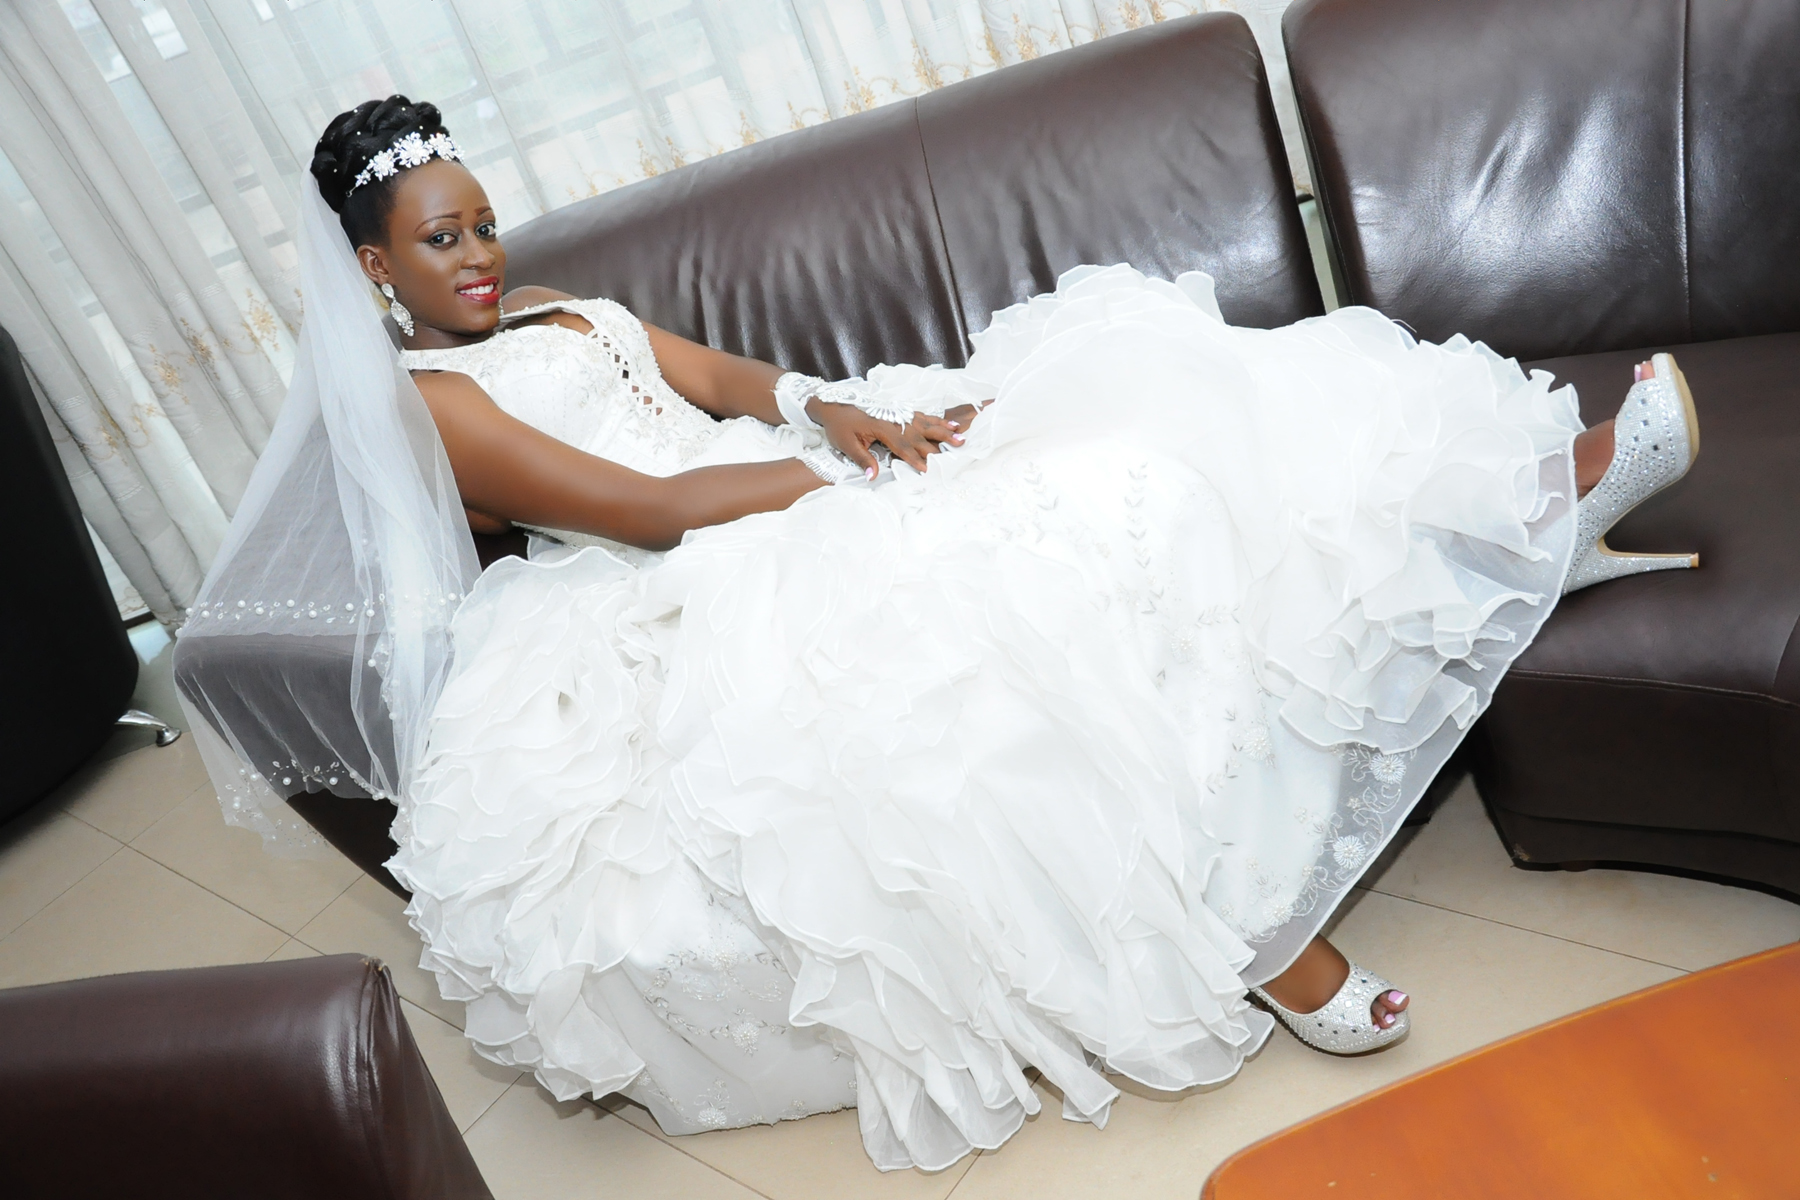 Doreen posing for a photo on her wedding day